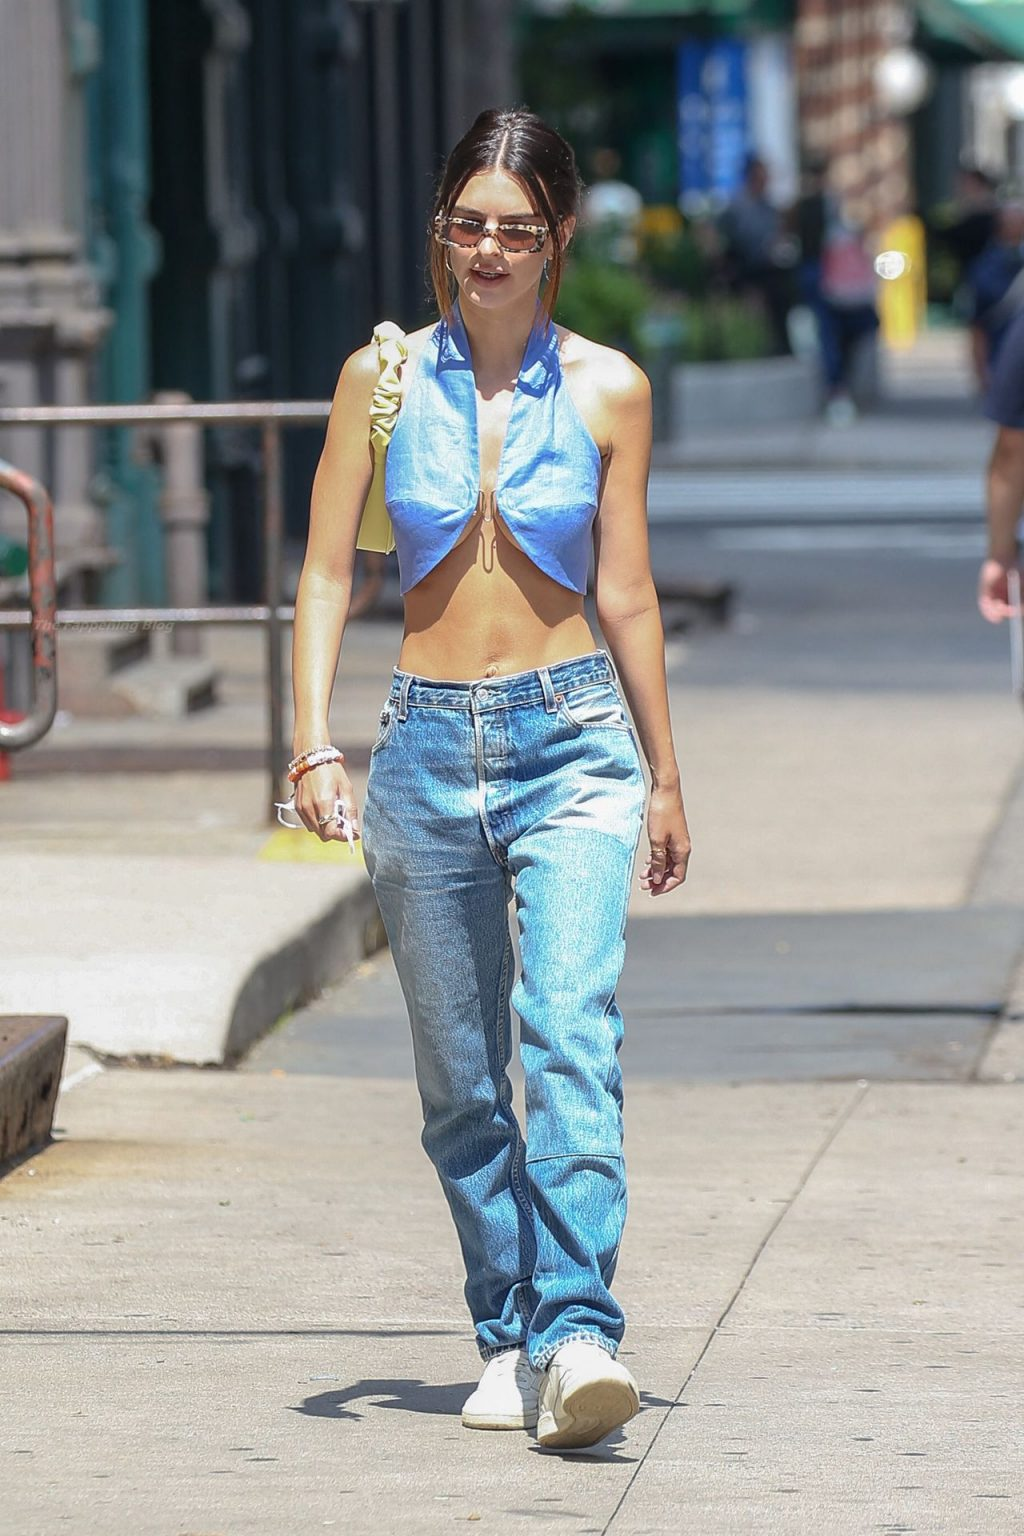 Braless Emily Ratajkowski is Spotted Waling Around in NYC (33 Photos)